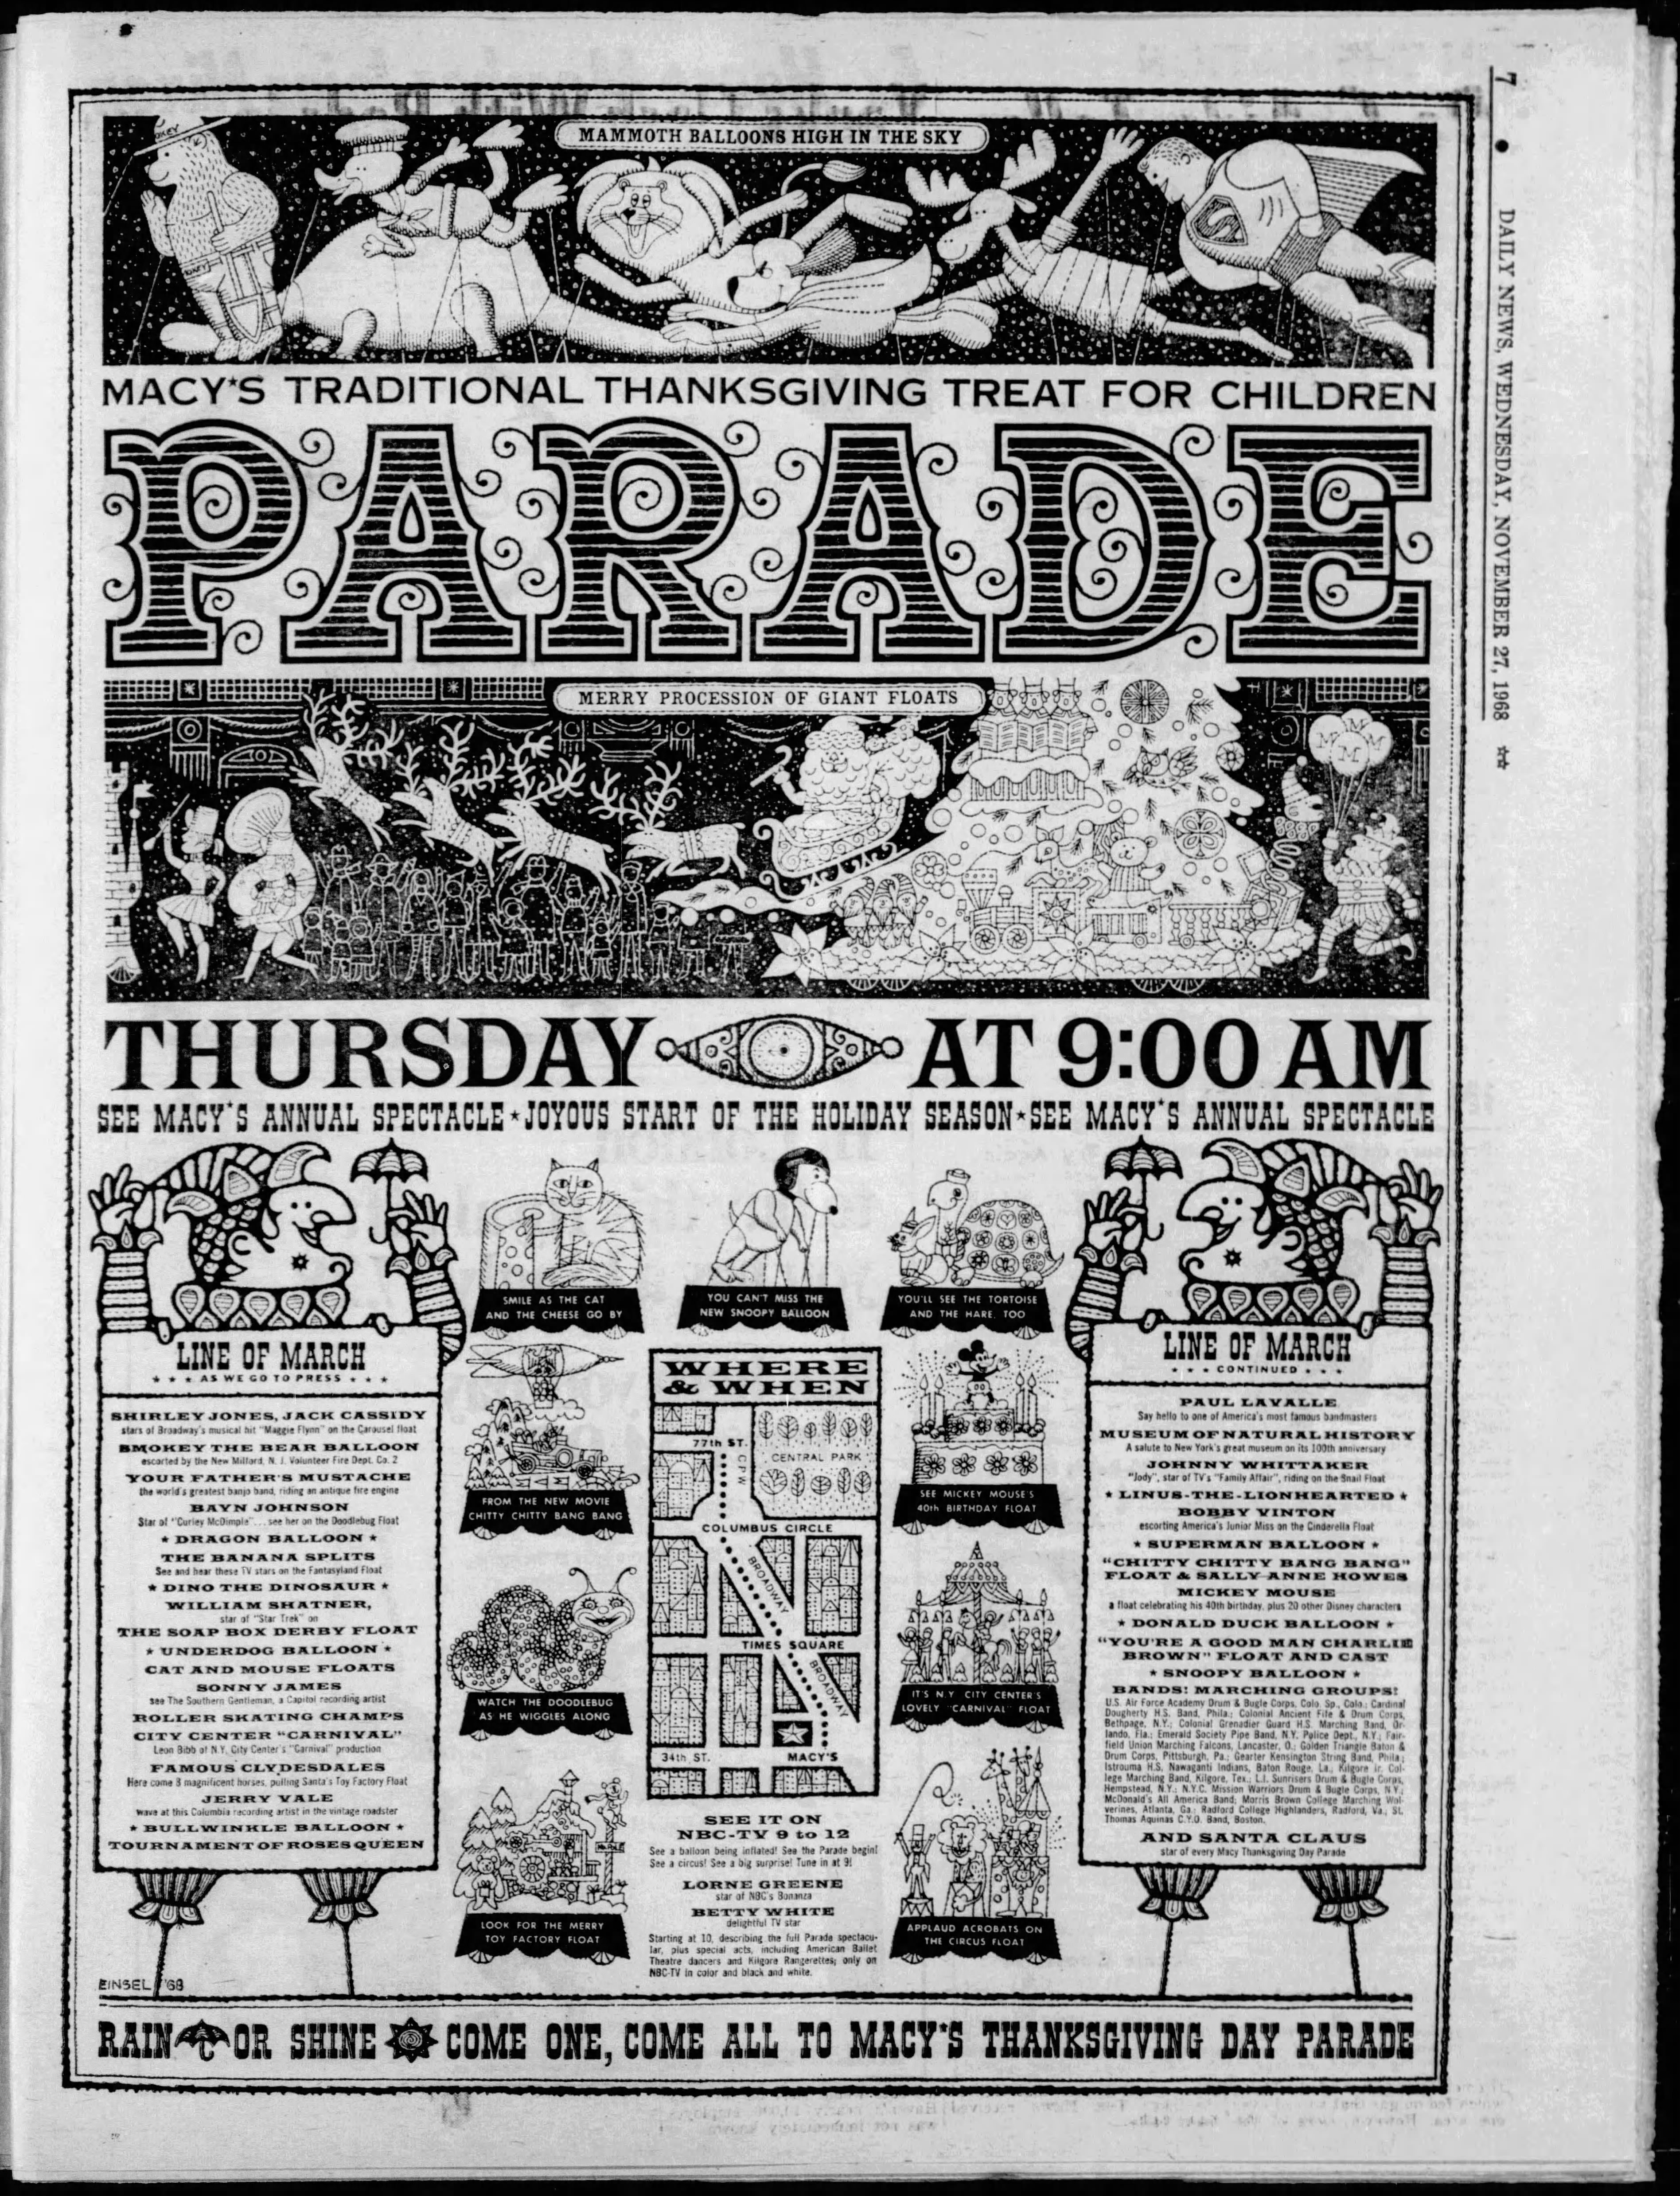 The 42nd Annual Macy's Thanksgiving Day Parade